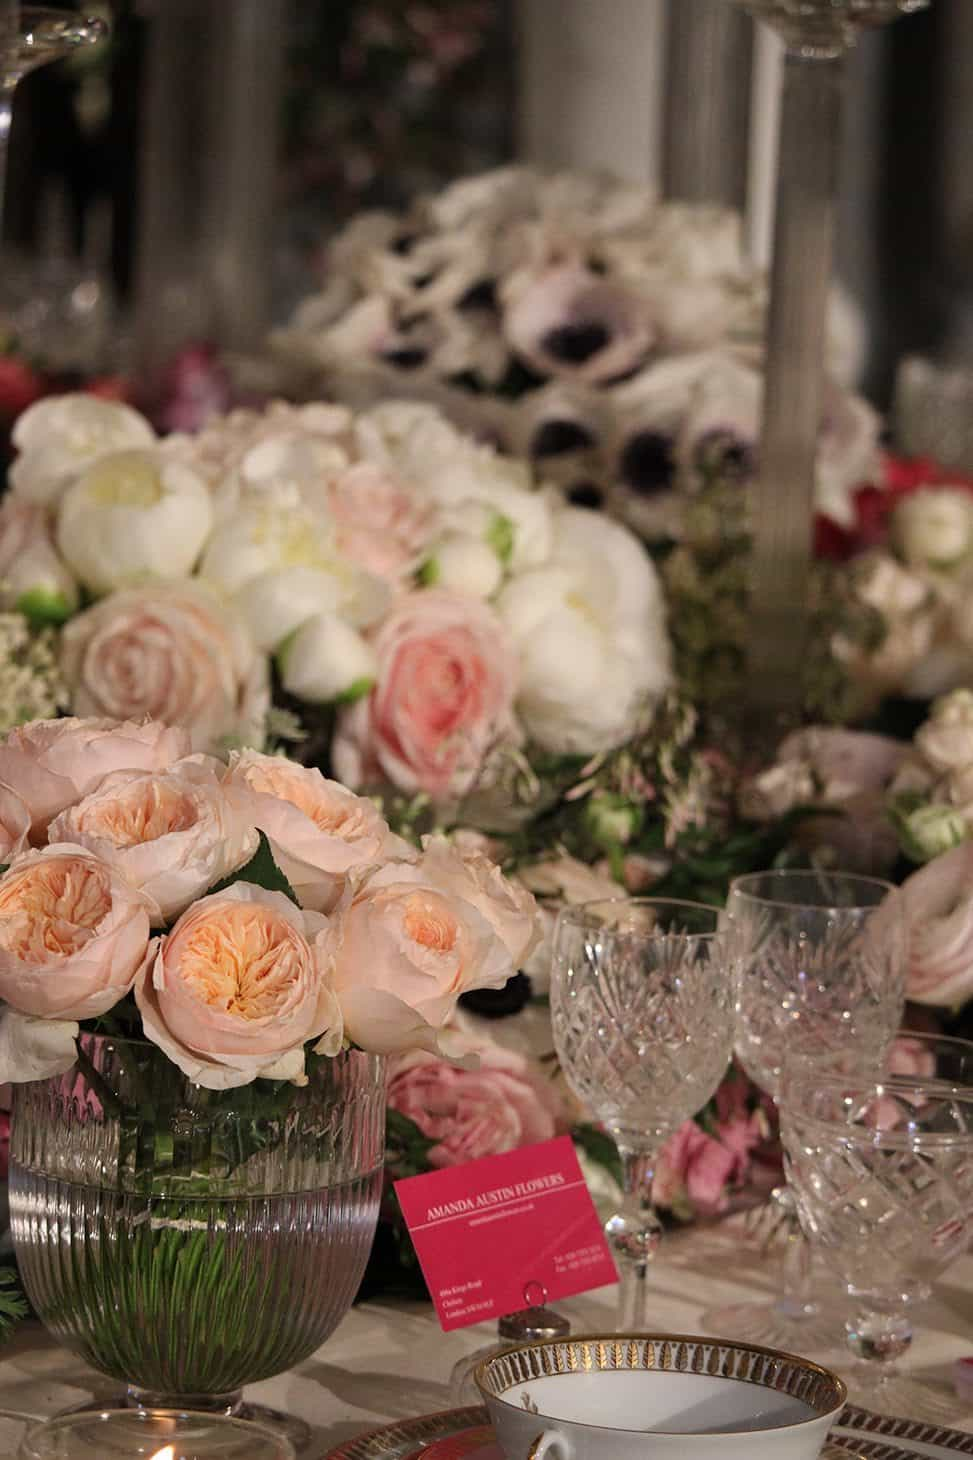 10 tips for taking better event photos, amanda austin flowers,  event photography, how to photograph an exhibition,  flower photography, Quintessentially Weddings, Quintessentially Atelier, 2016, wedding shows london, best wedding shows